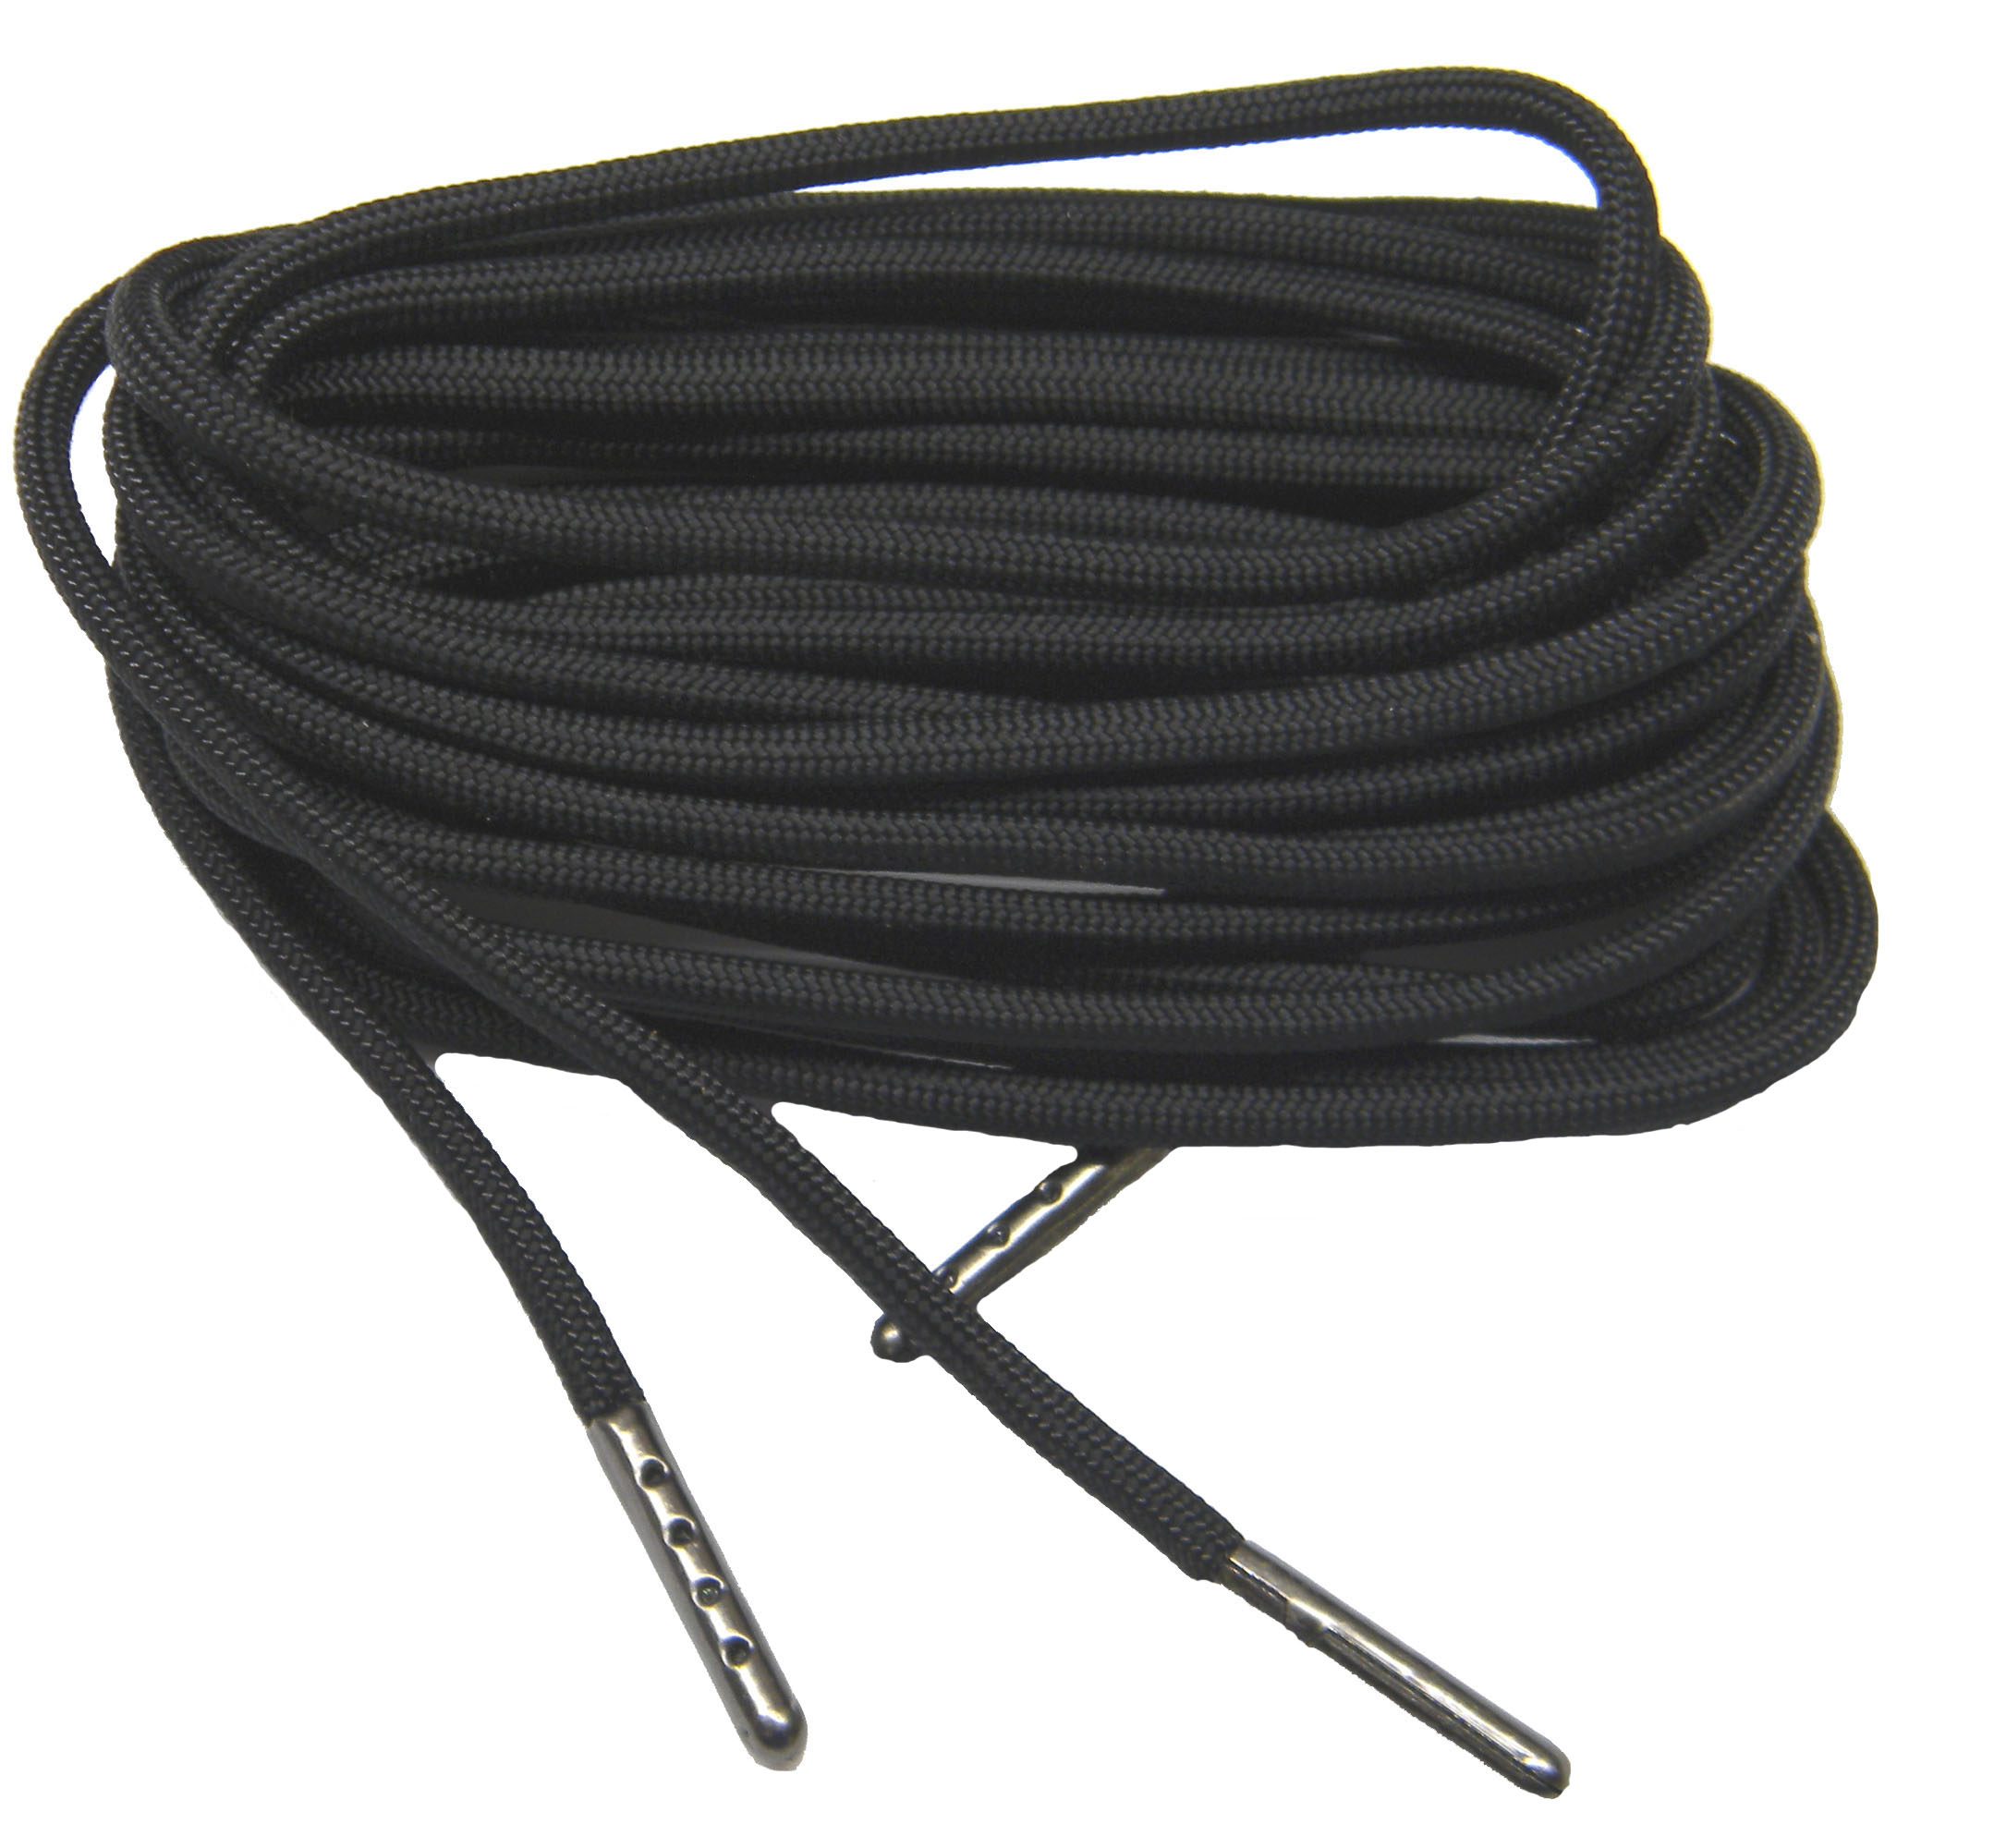 63 Inch 160 cm Black 550 Paracord with Black Steel Tips; 2 Pair pack of the Strongest shoelaces boot laces Available